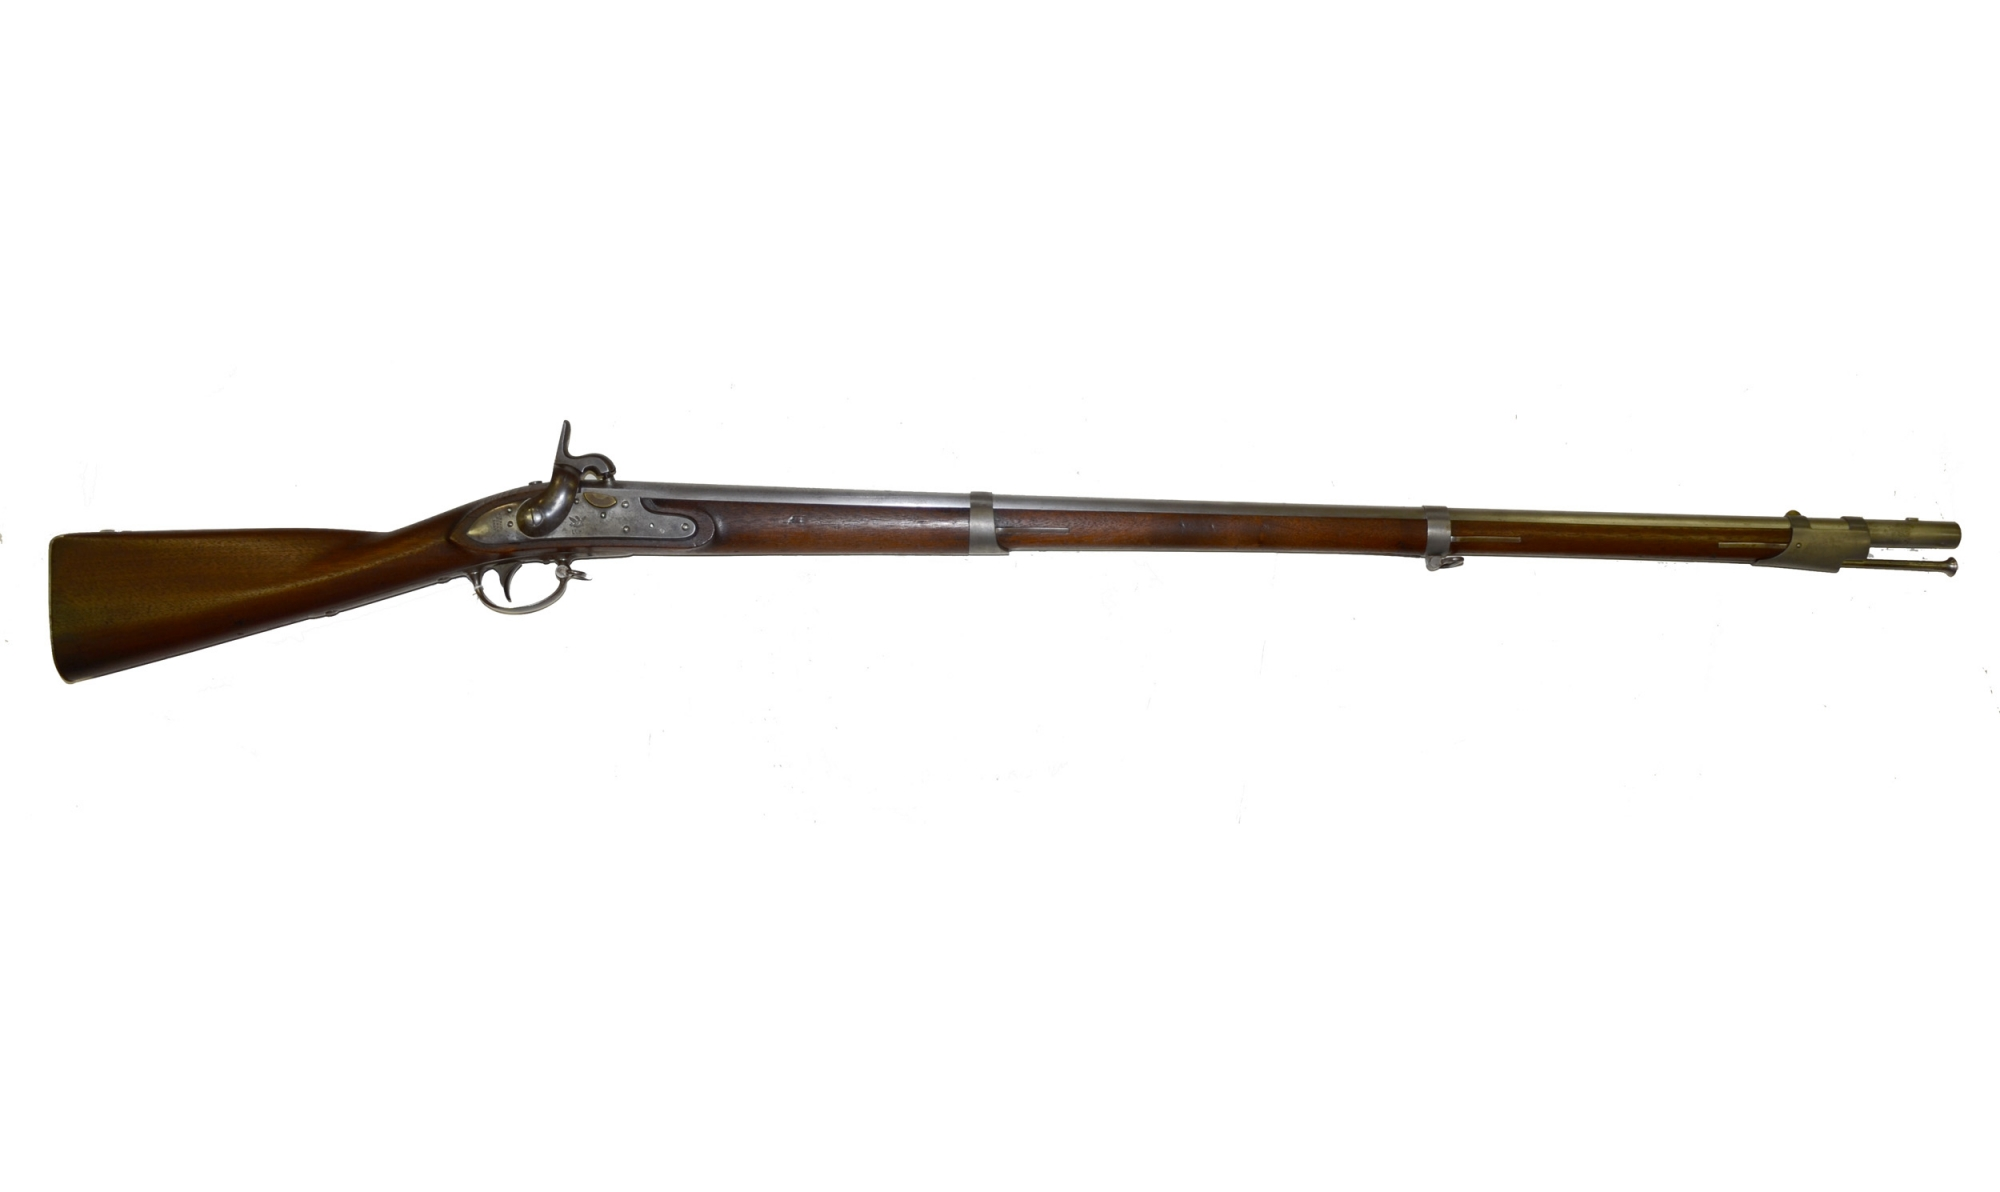 US MODEL 1816 FLINTLOCK MUSKET CONVERETED TO PERCUSSION